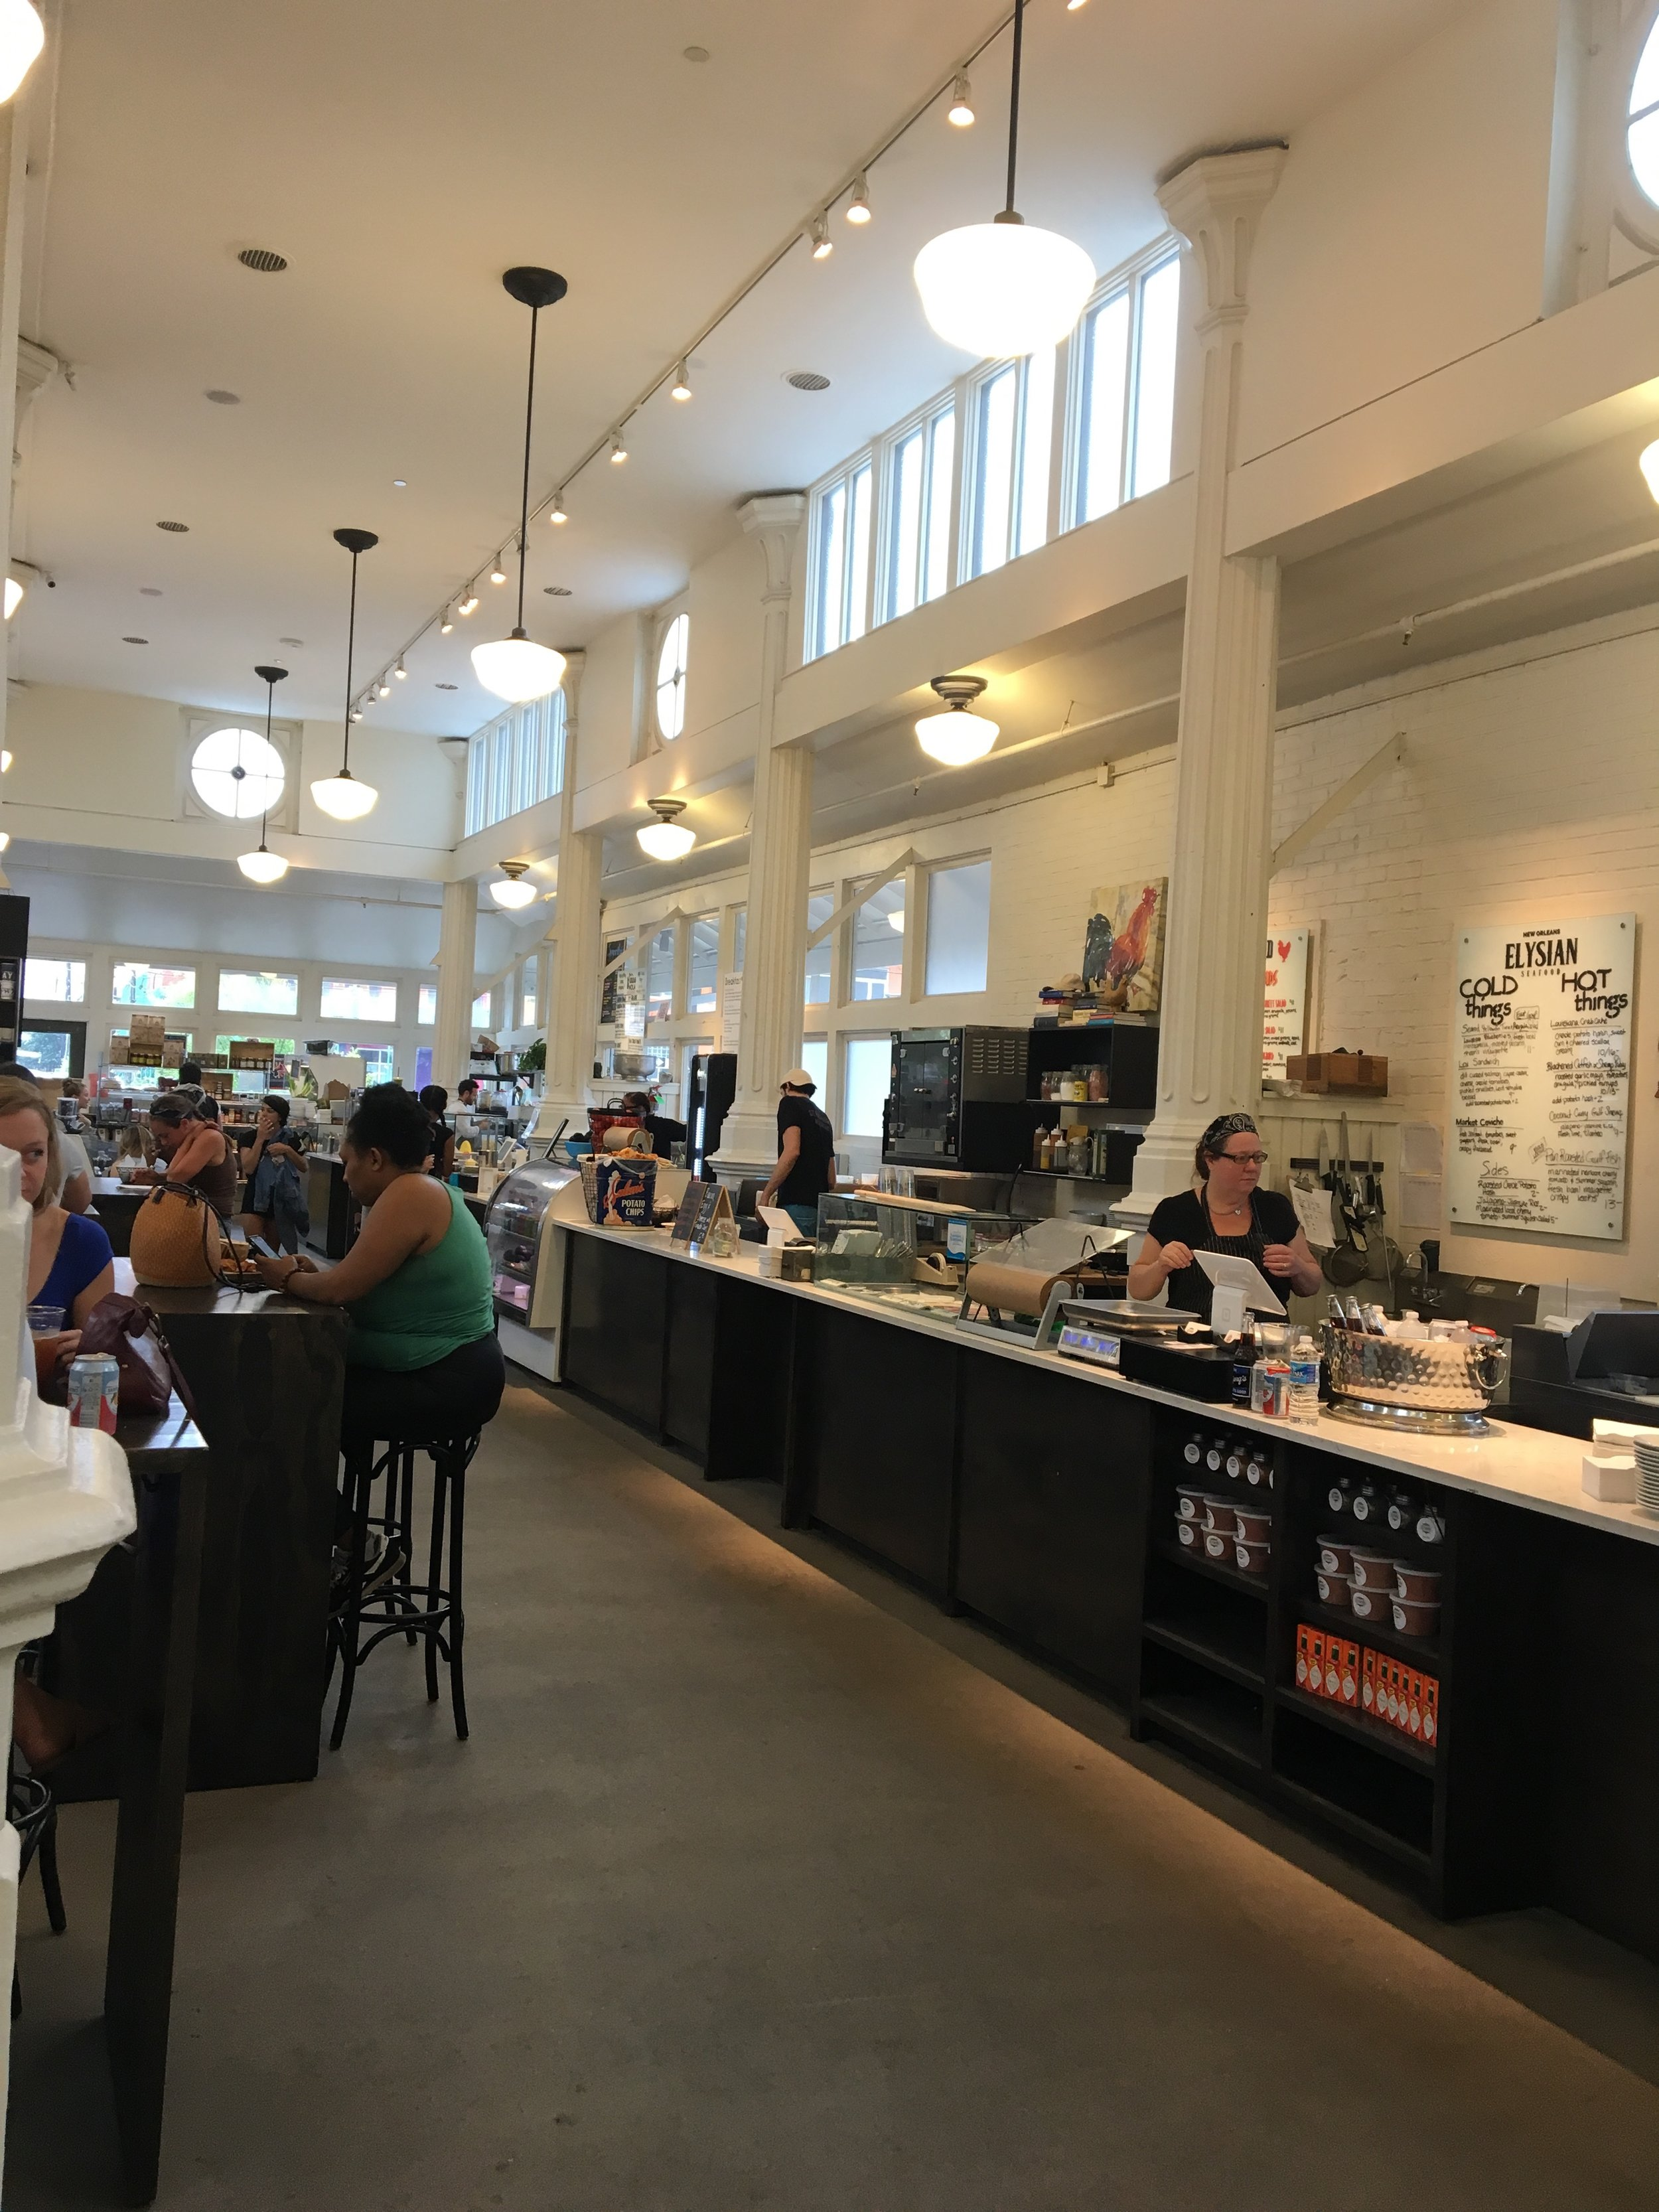 I loved the open, airy, modern atmosphere of St. Roch Market.